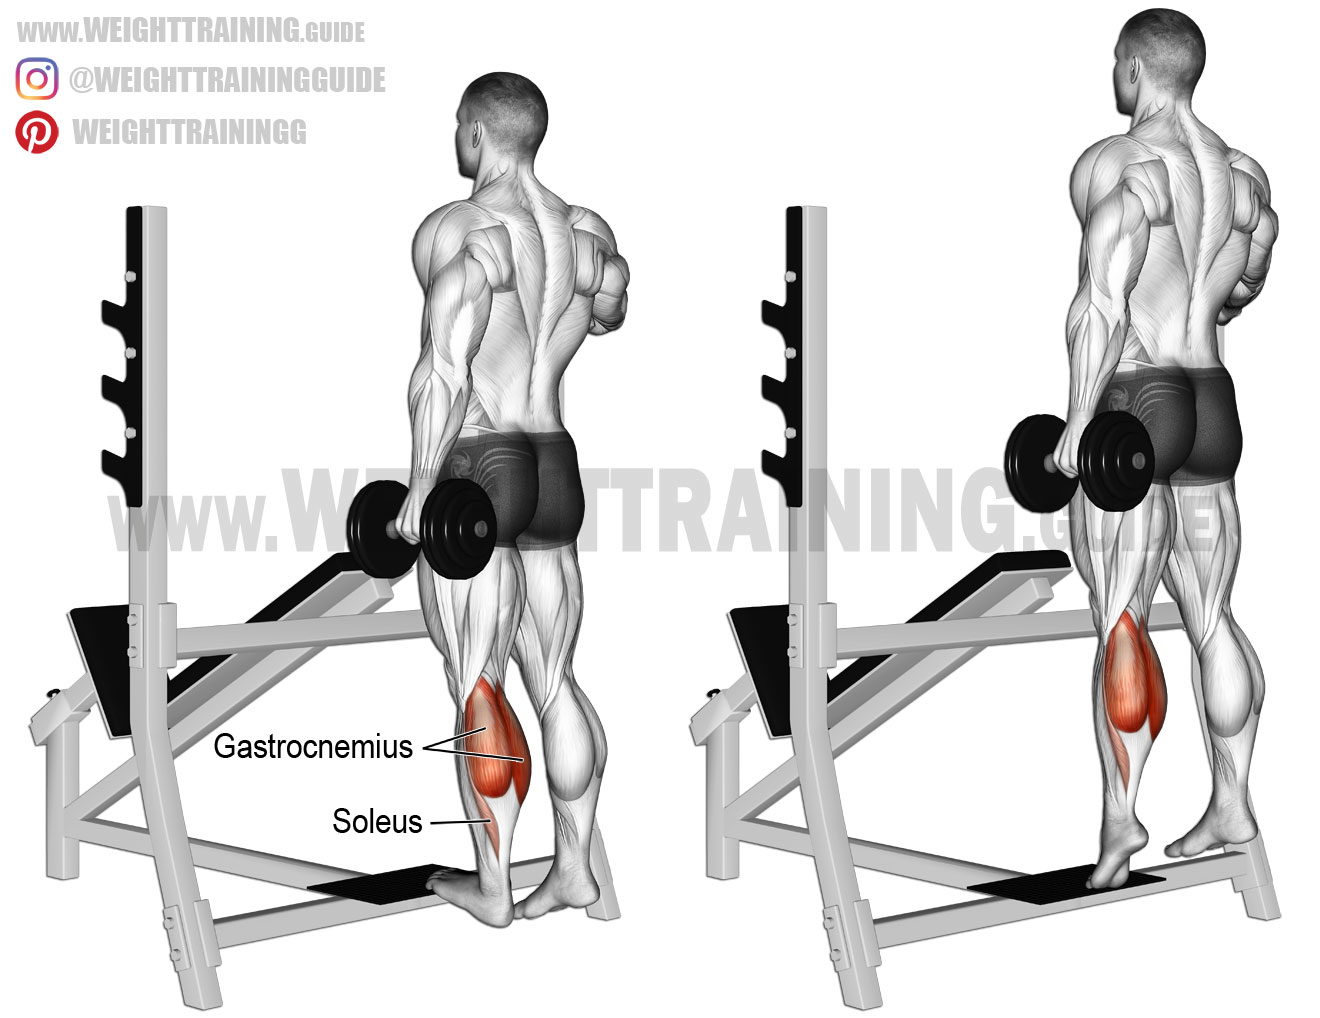 Standing Dumbbell One Leg Calf Raise Exercise Instructions